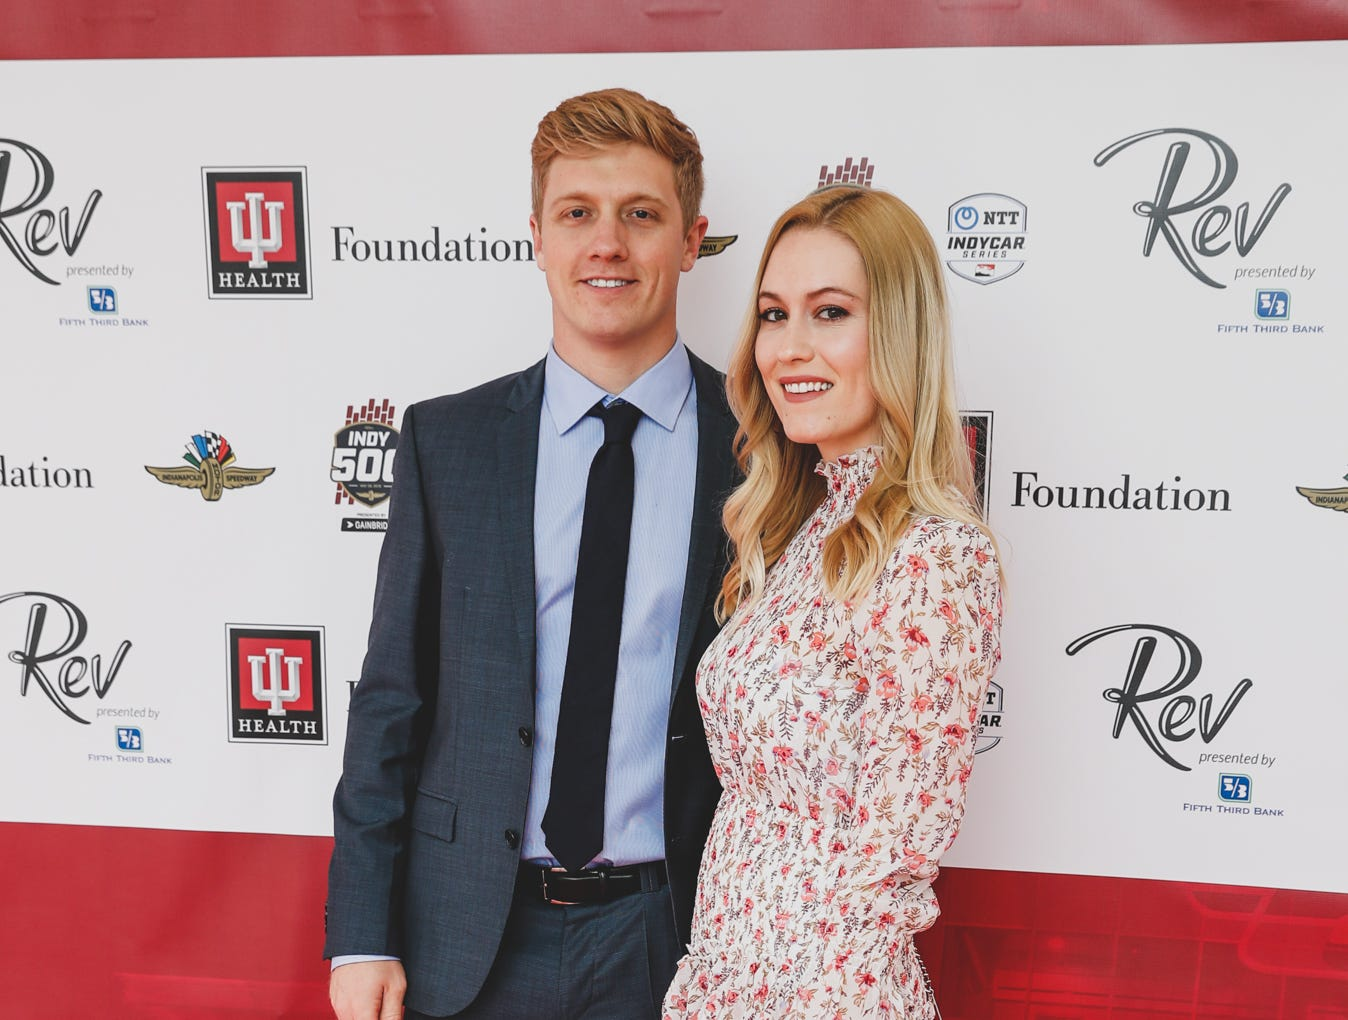 IndyCar driver Spencer Pigot and Katie Bell walk the red carpet at the Rev Indy fundraiser, held at the Indianapolis Motor Speedway on Saturday, May 4, 2019. Funds raised support the IU Health Foundation statewide and the IU Health Emergency Medical Center at IMS.